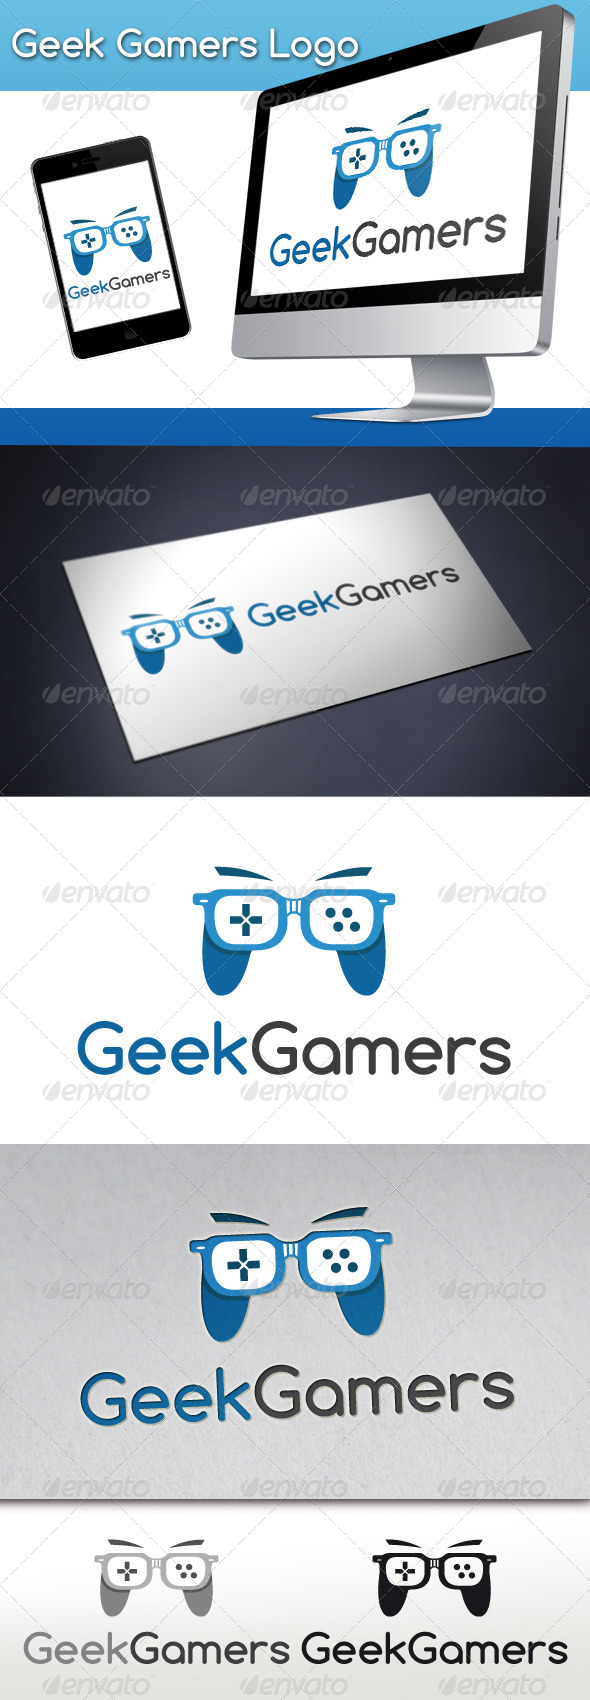 GraphicRiver Geek Gamers Logo 3316753